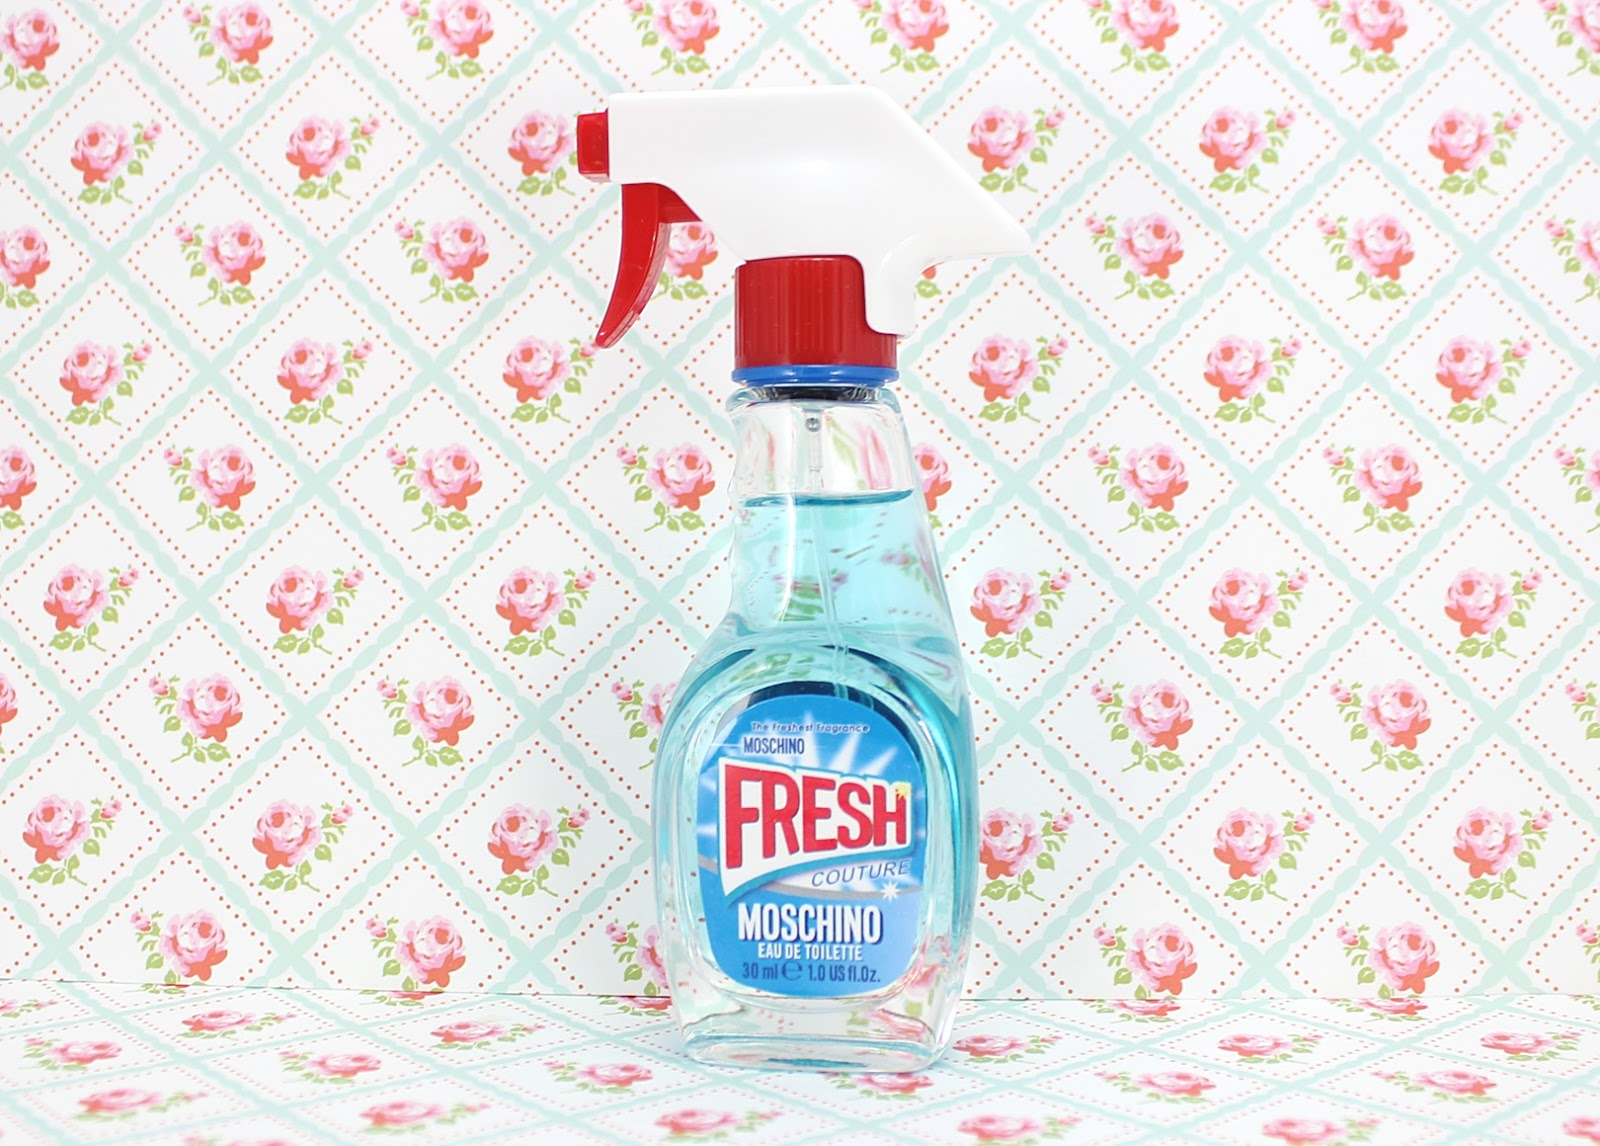 Moschino 'Fresh Couture' Eau de Toilette review